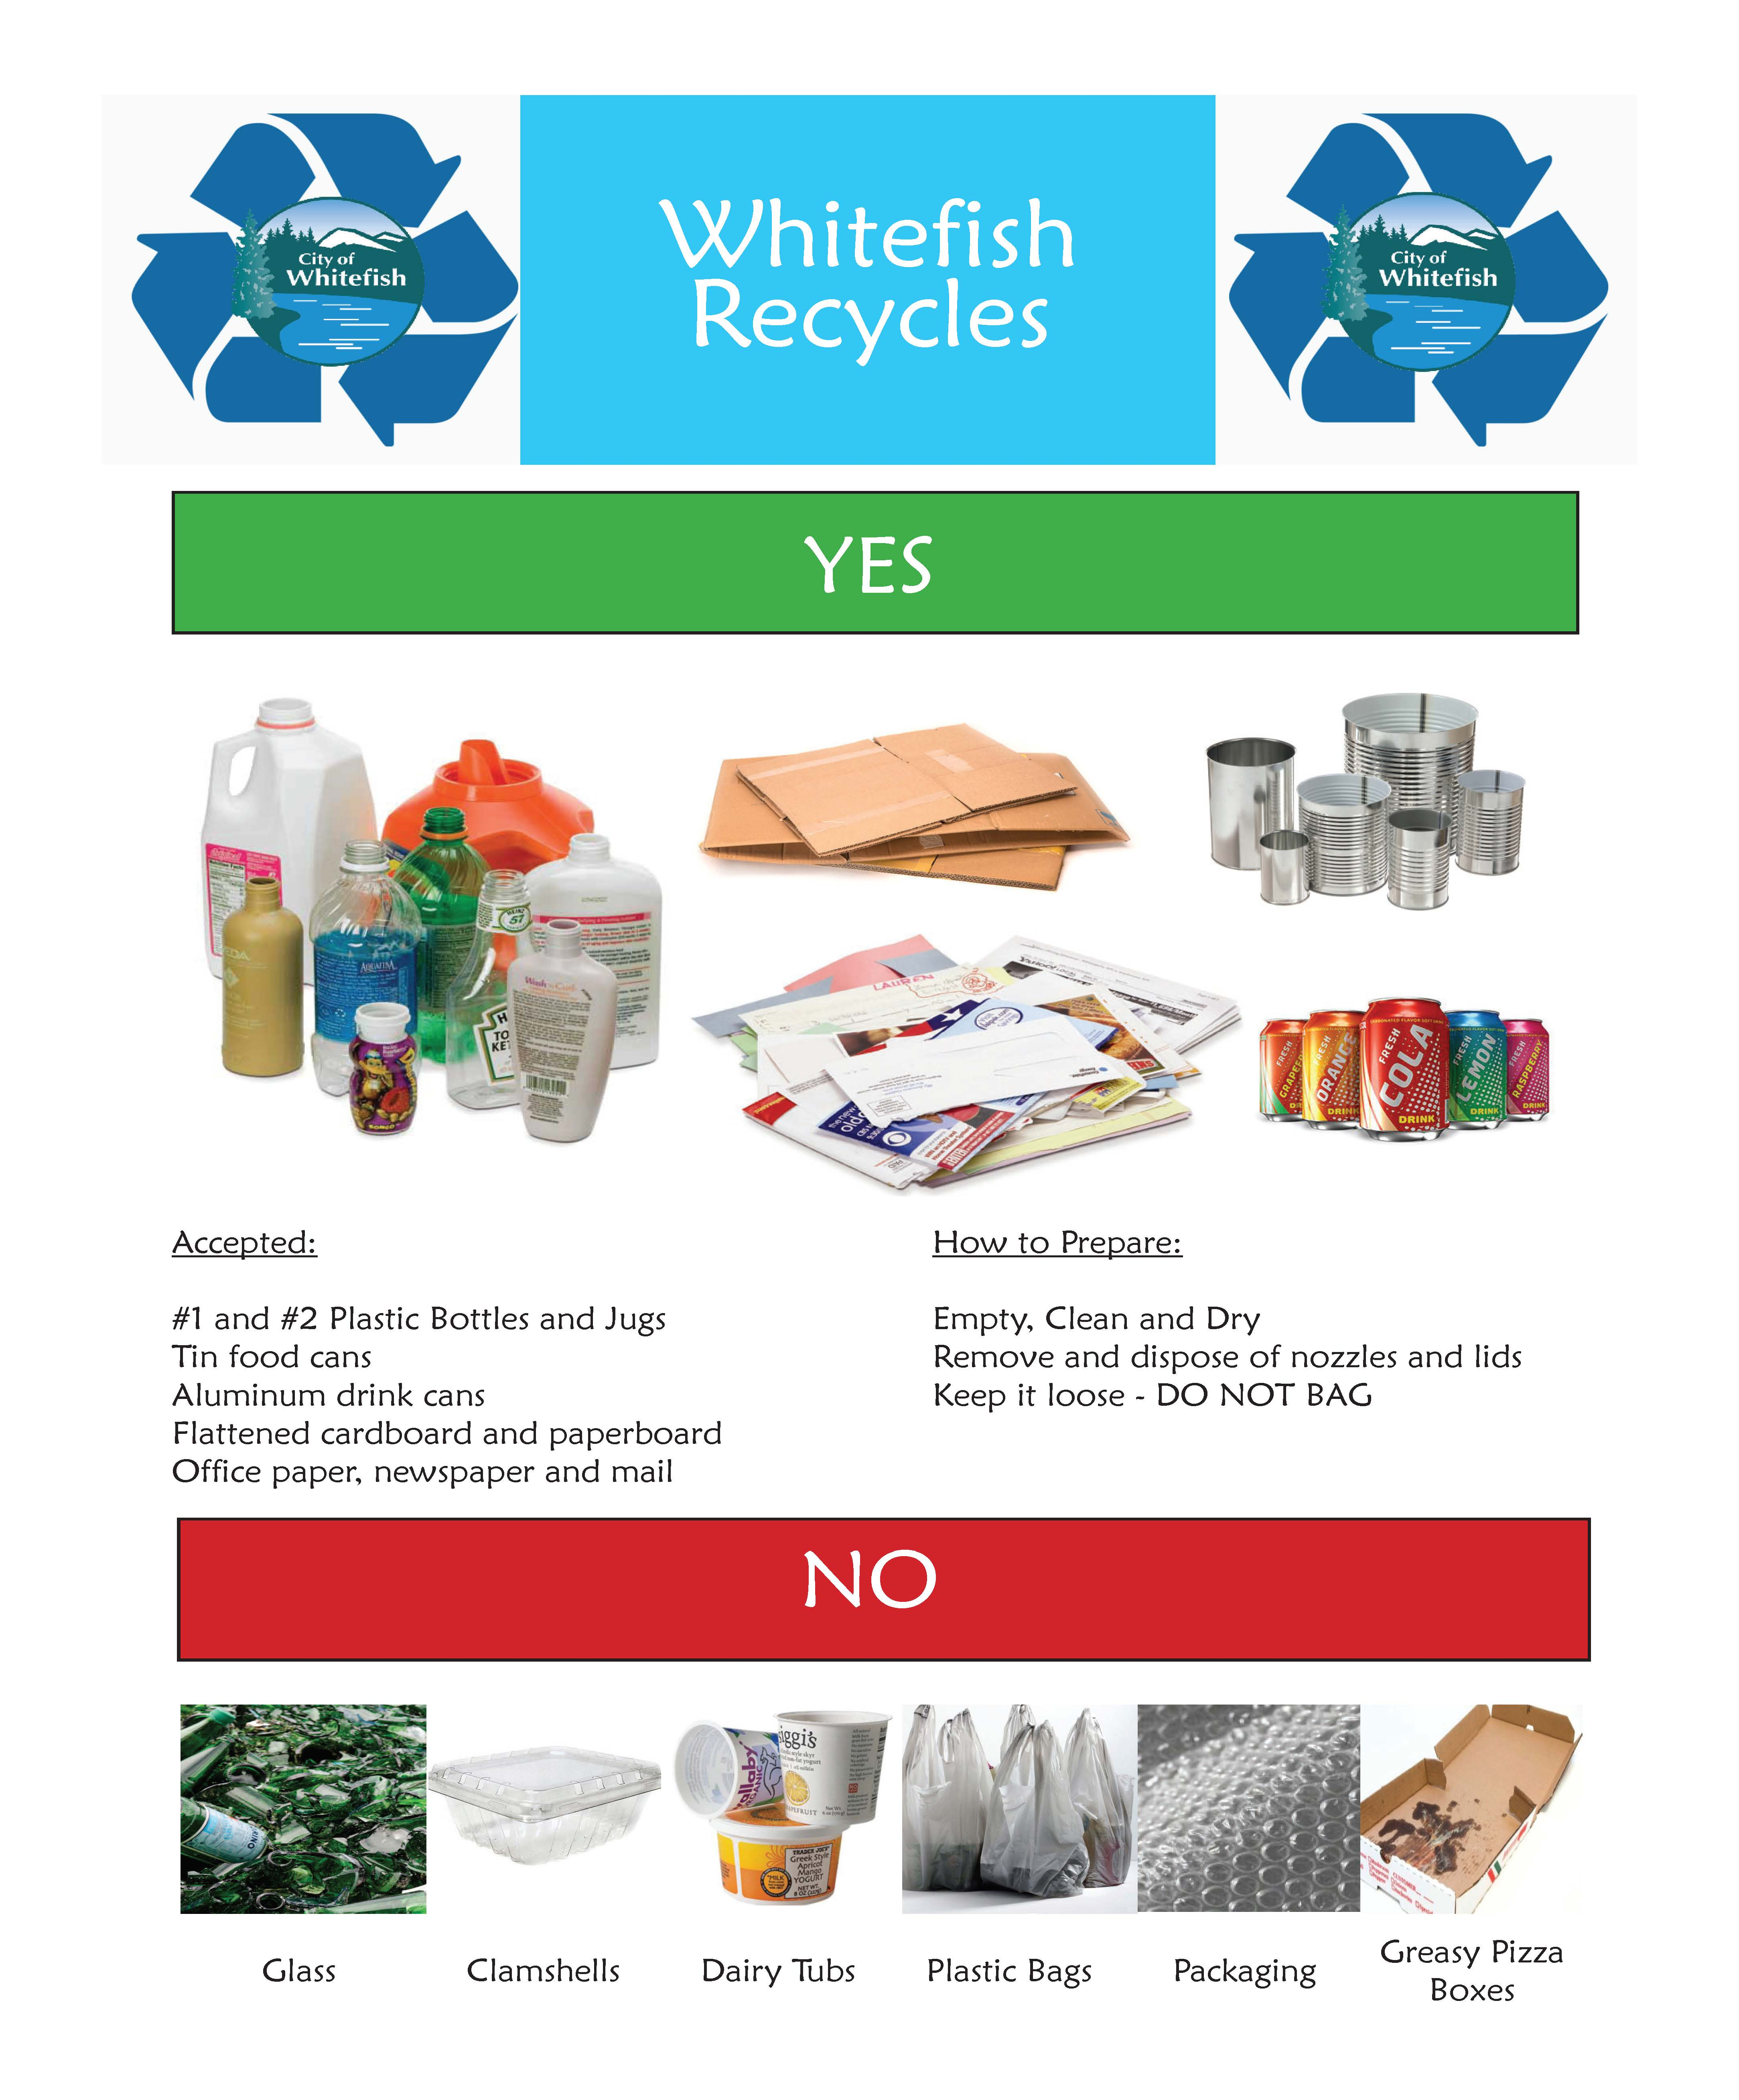 Whitefish recycling information